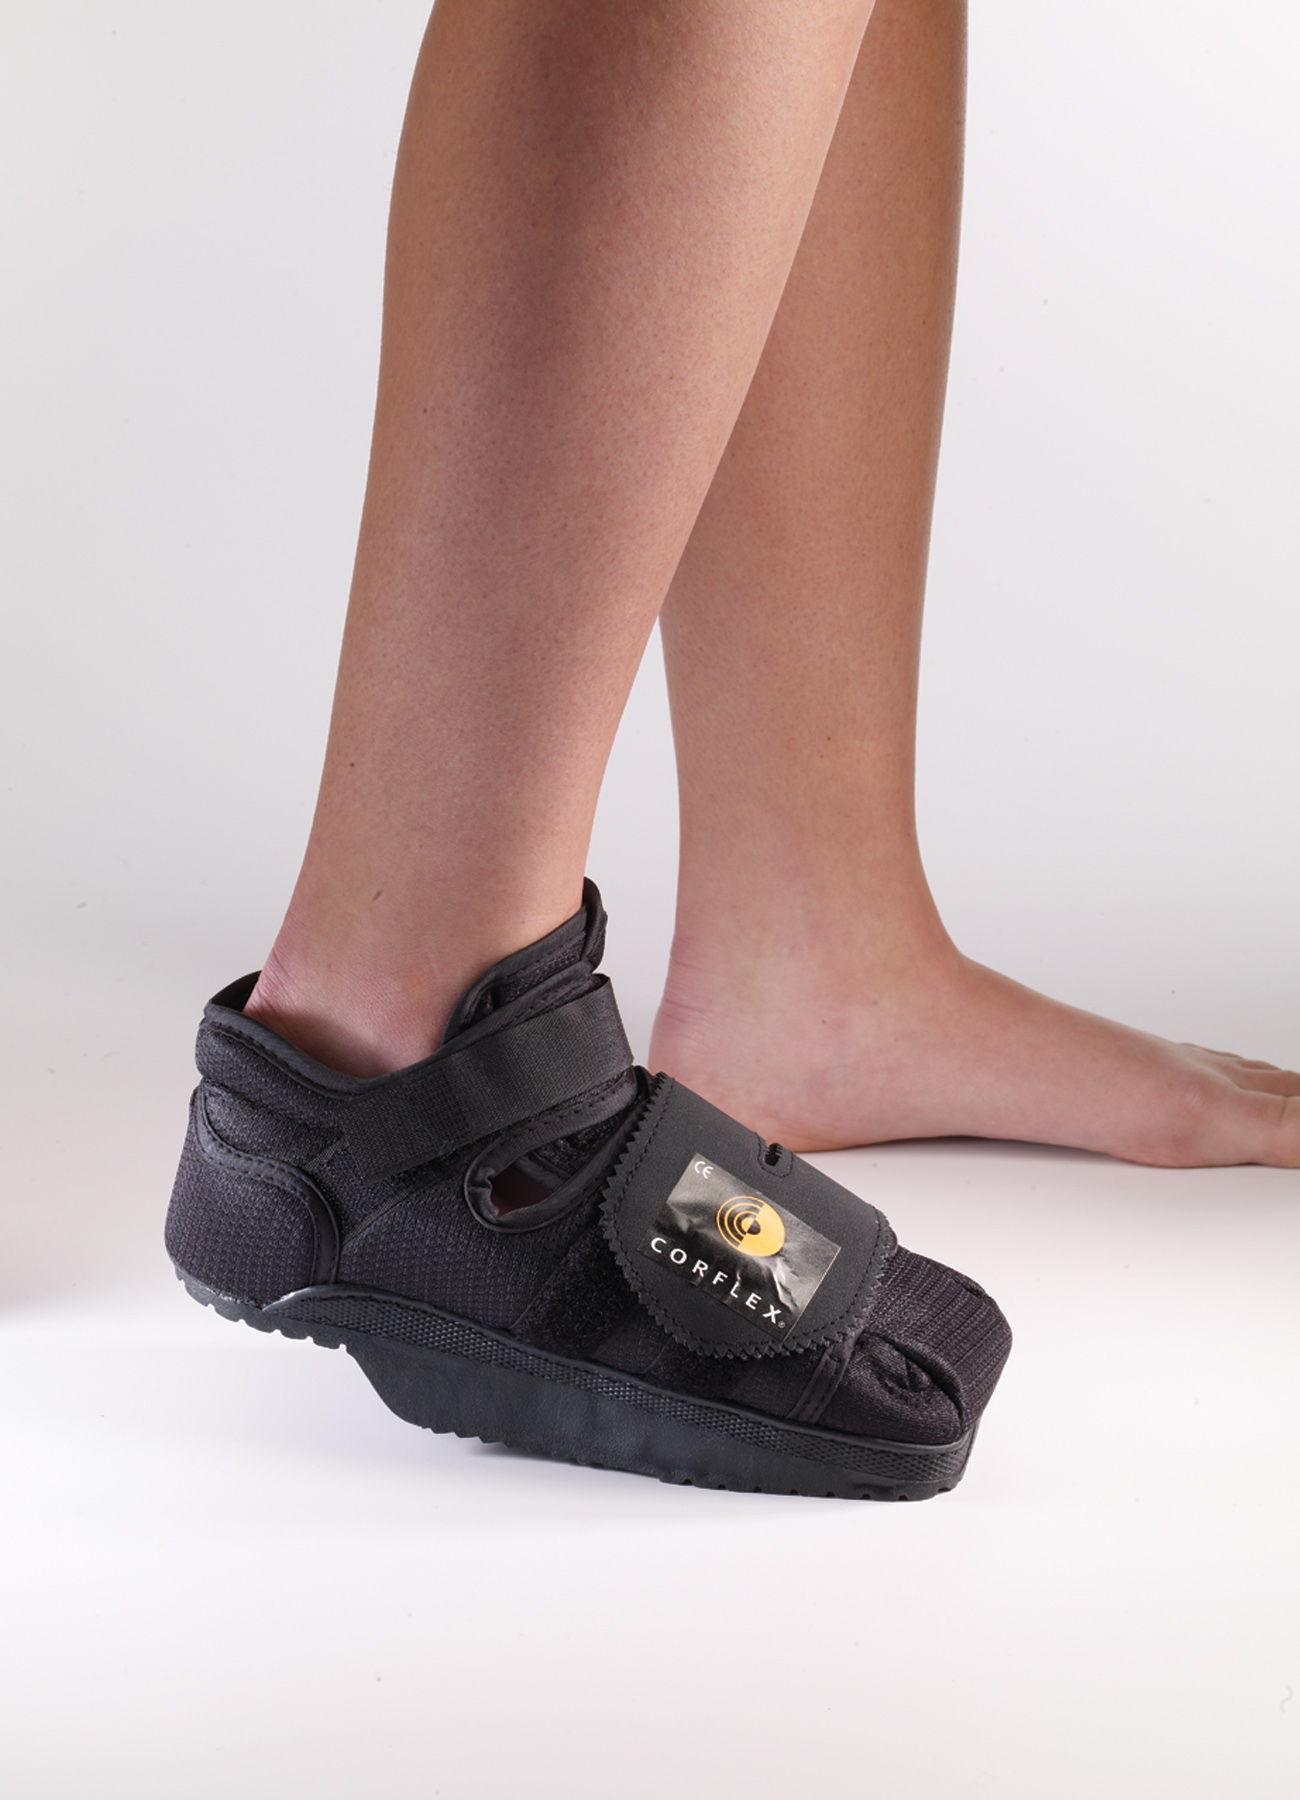 Heelwedge Shoe